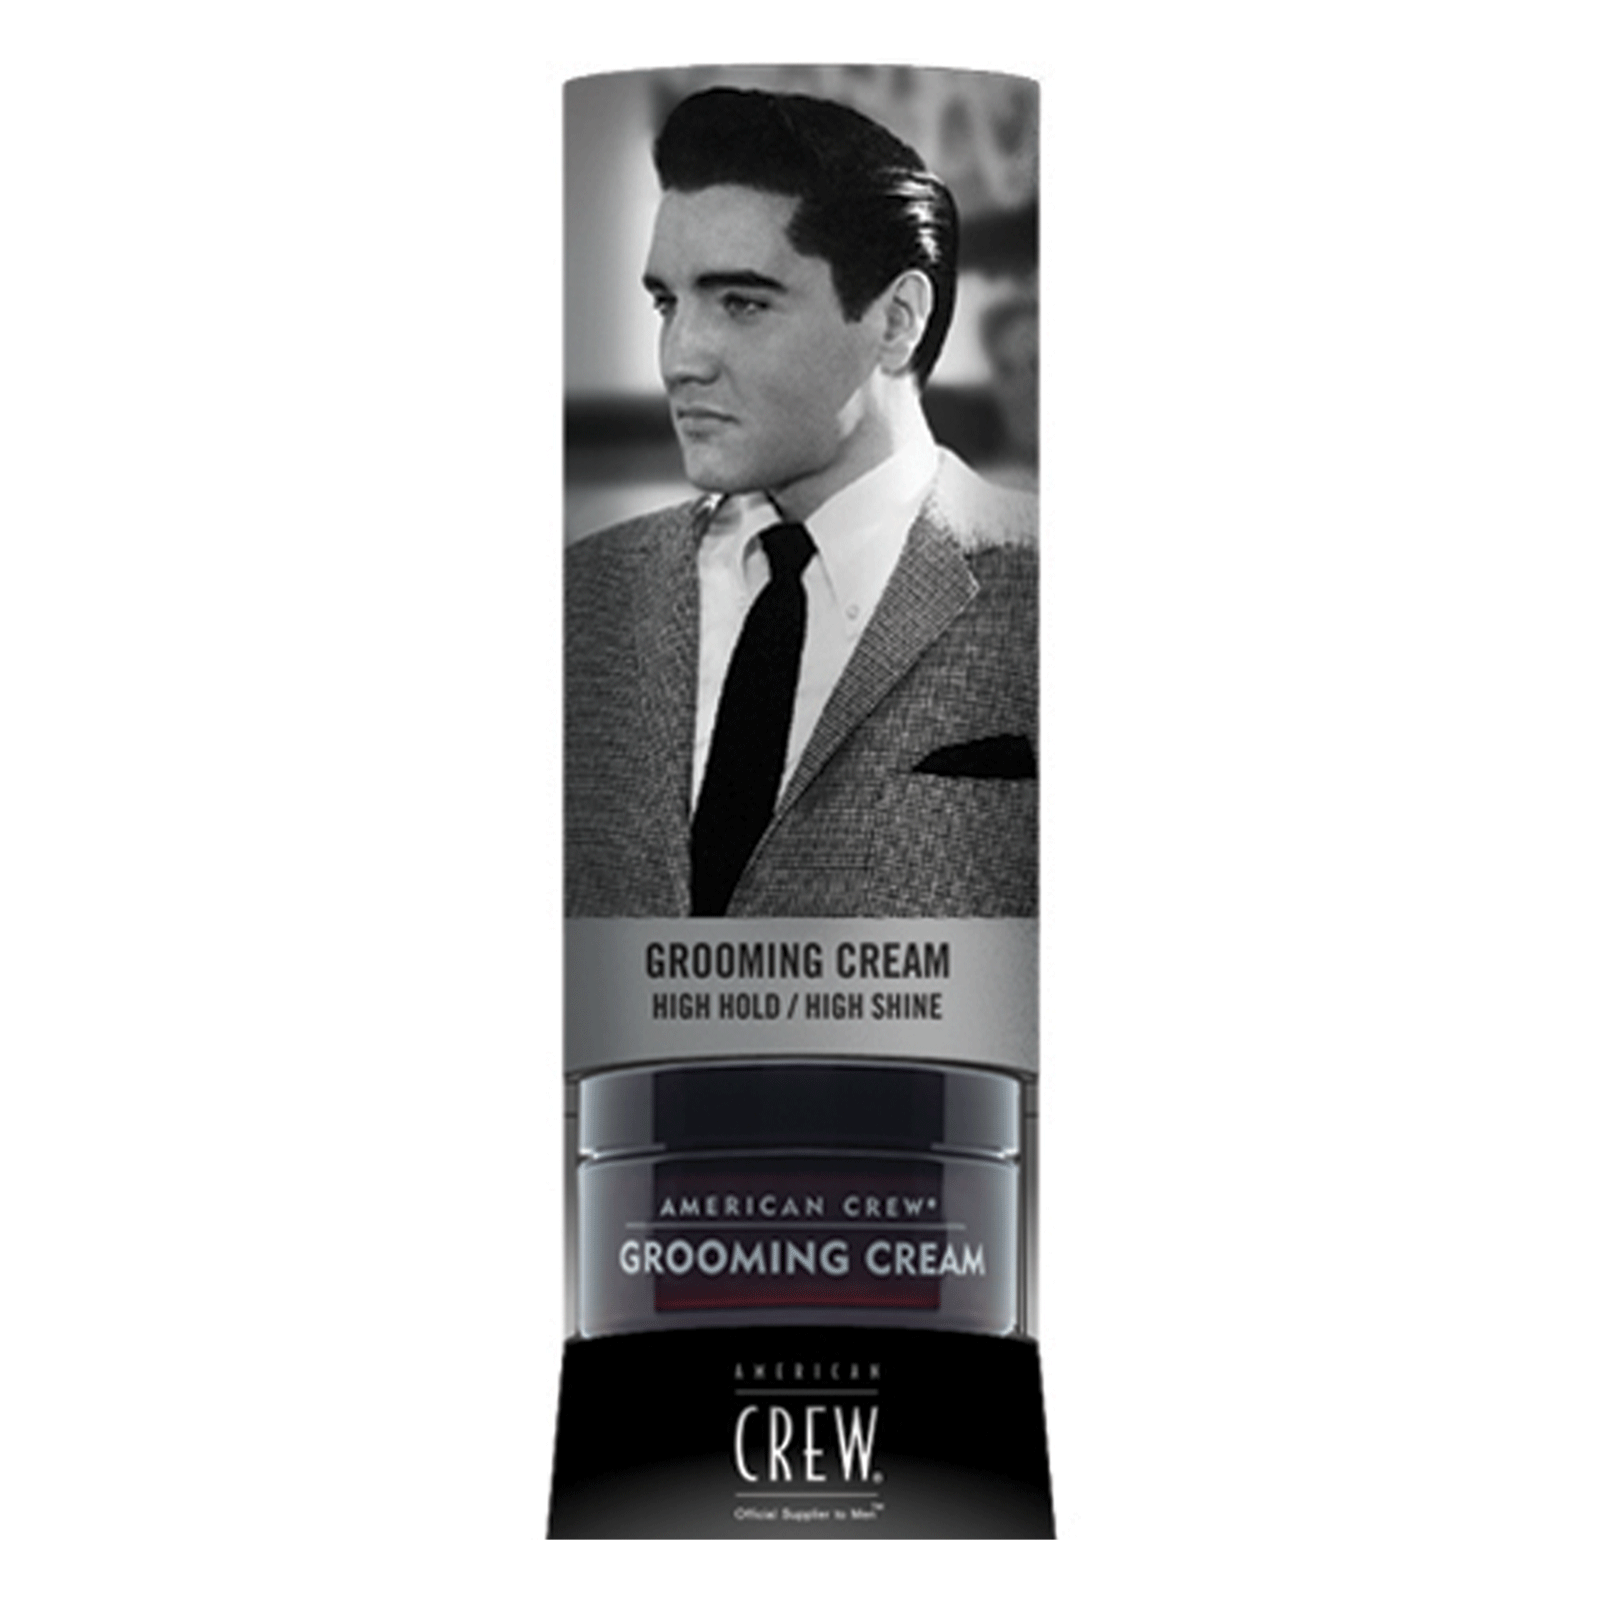 Grooming Cream with Elvis Gravity Feed